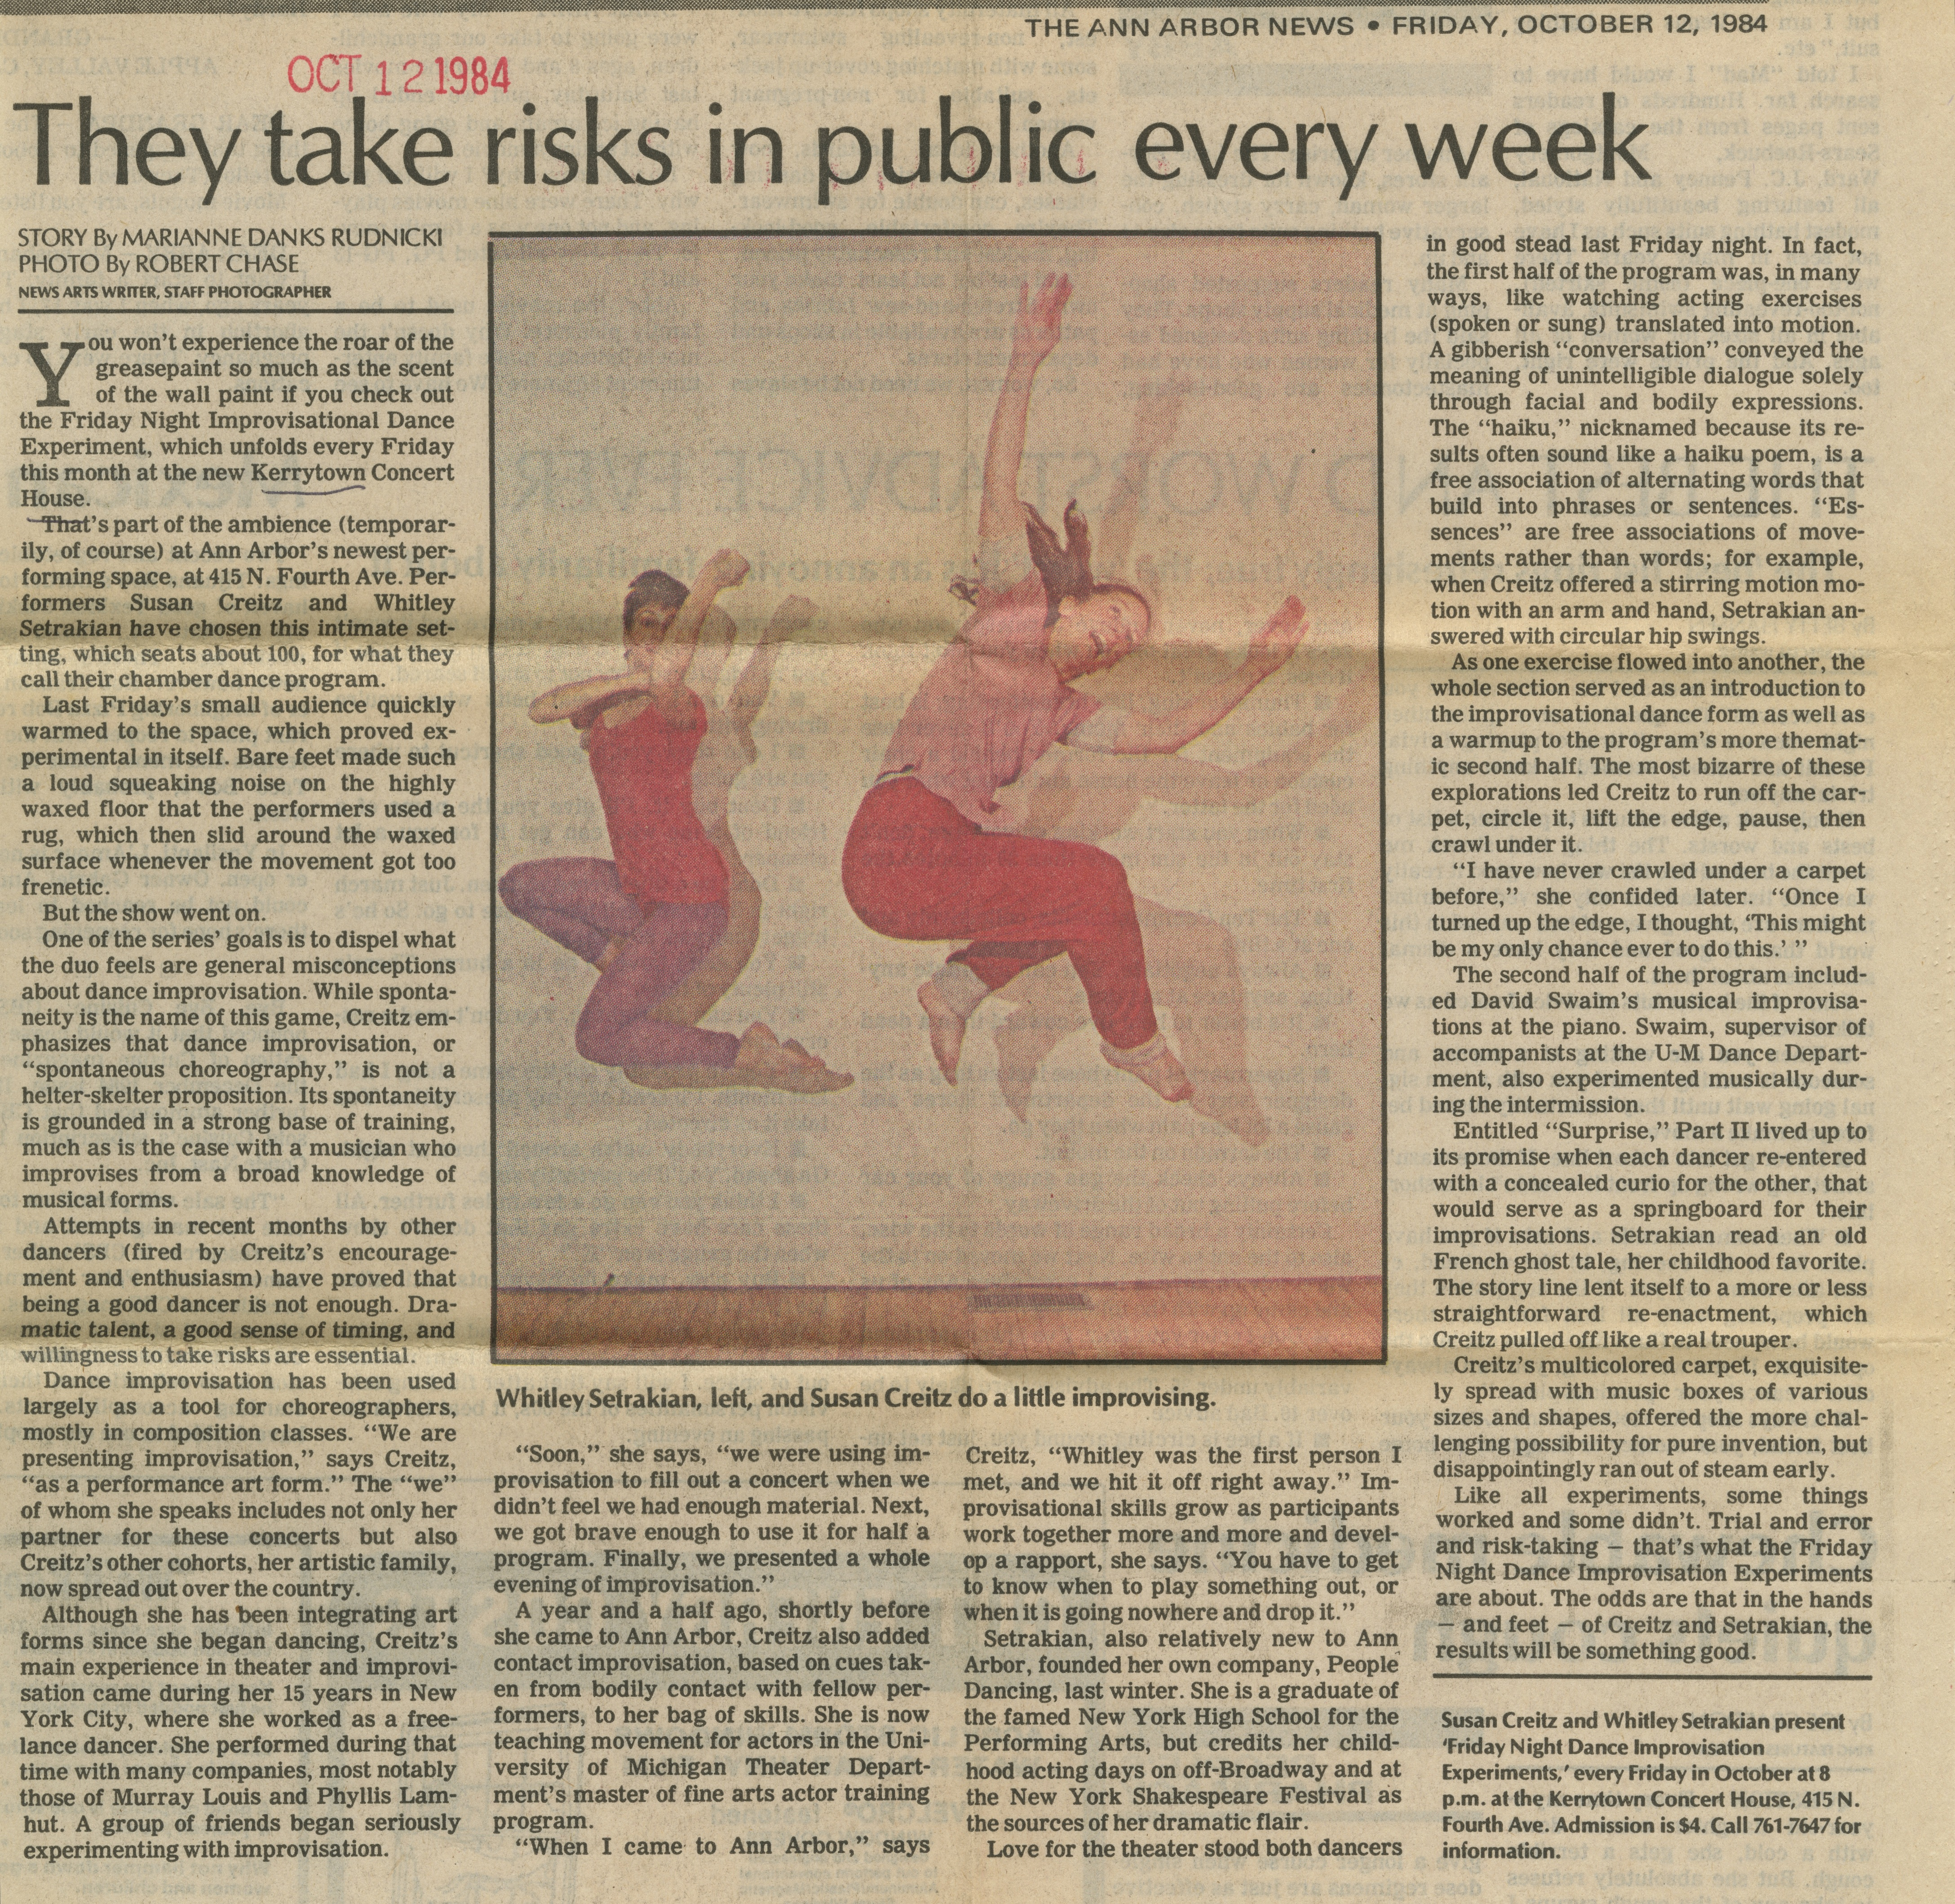 They take risks in public every week image